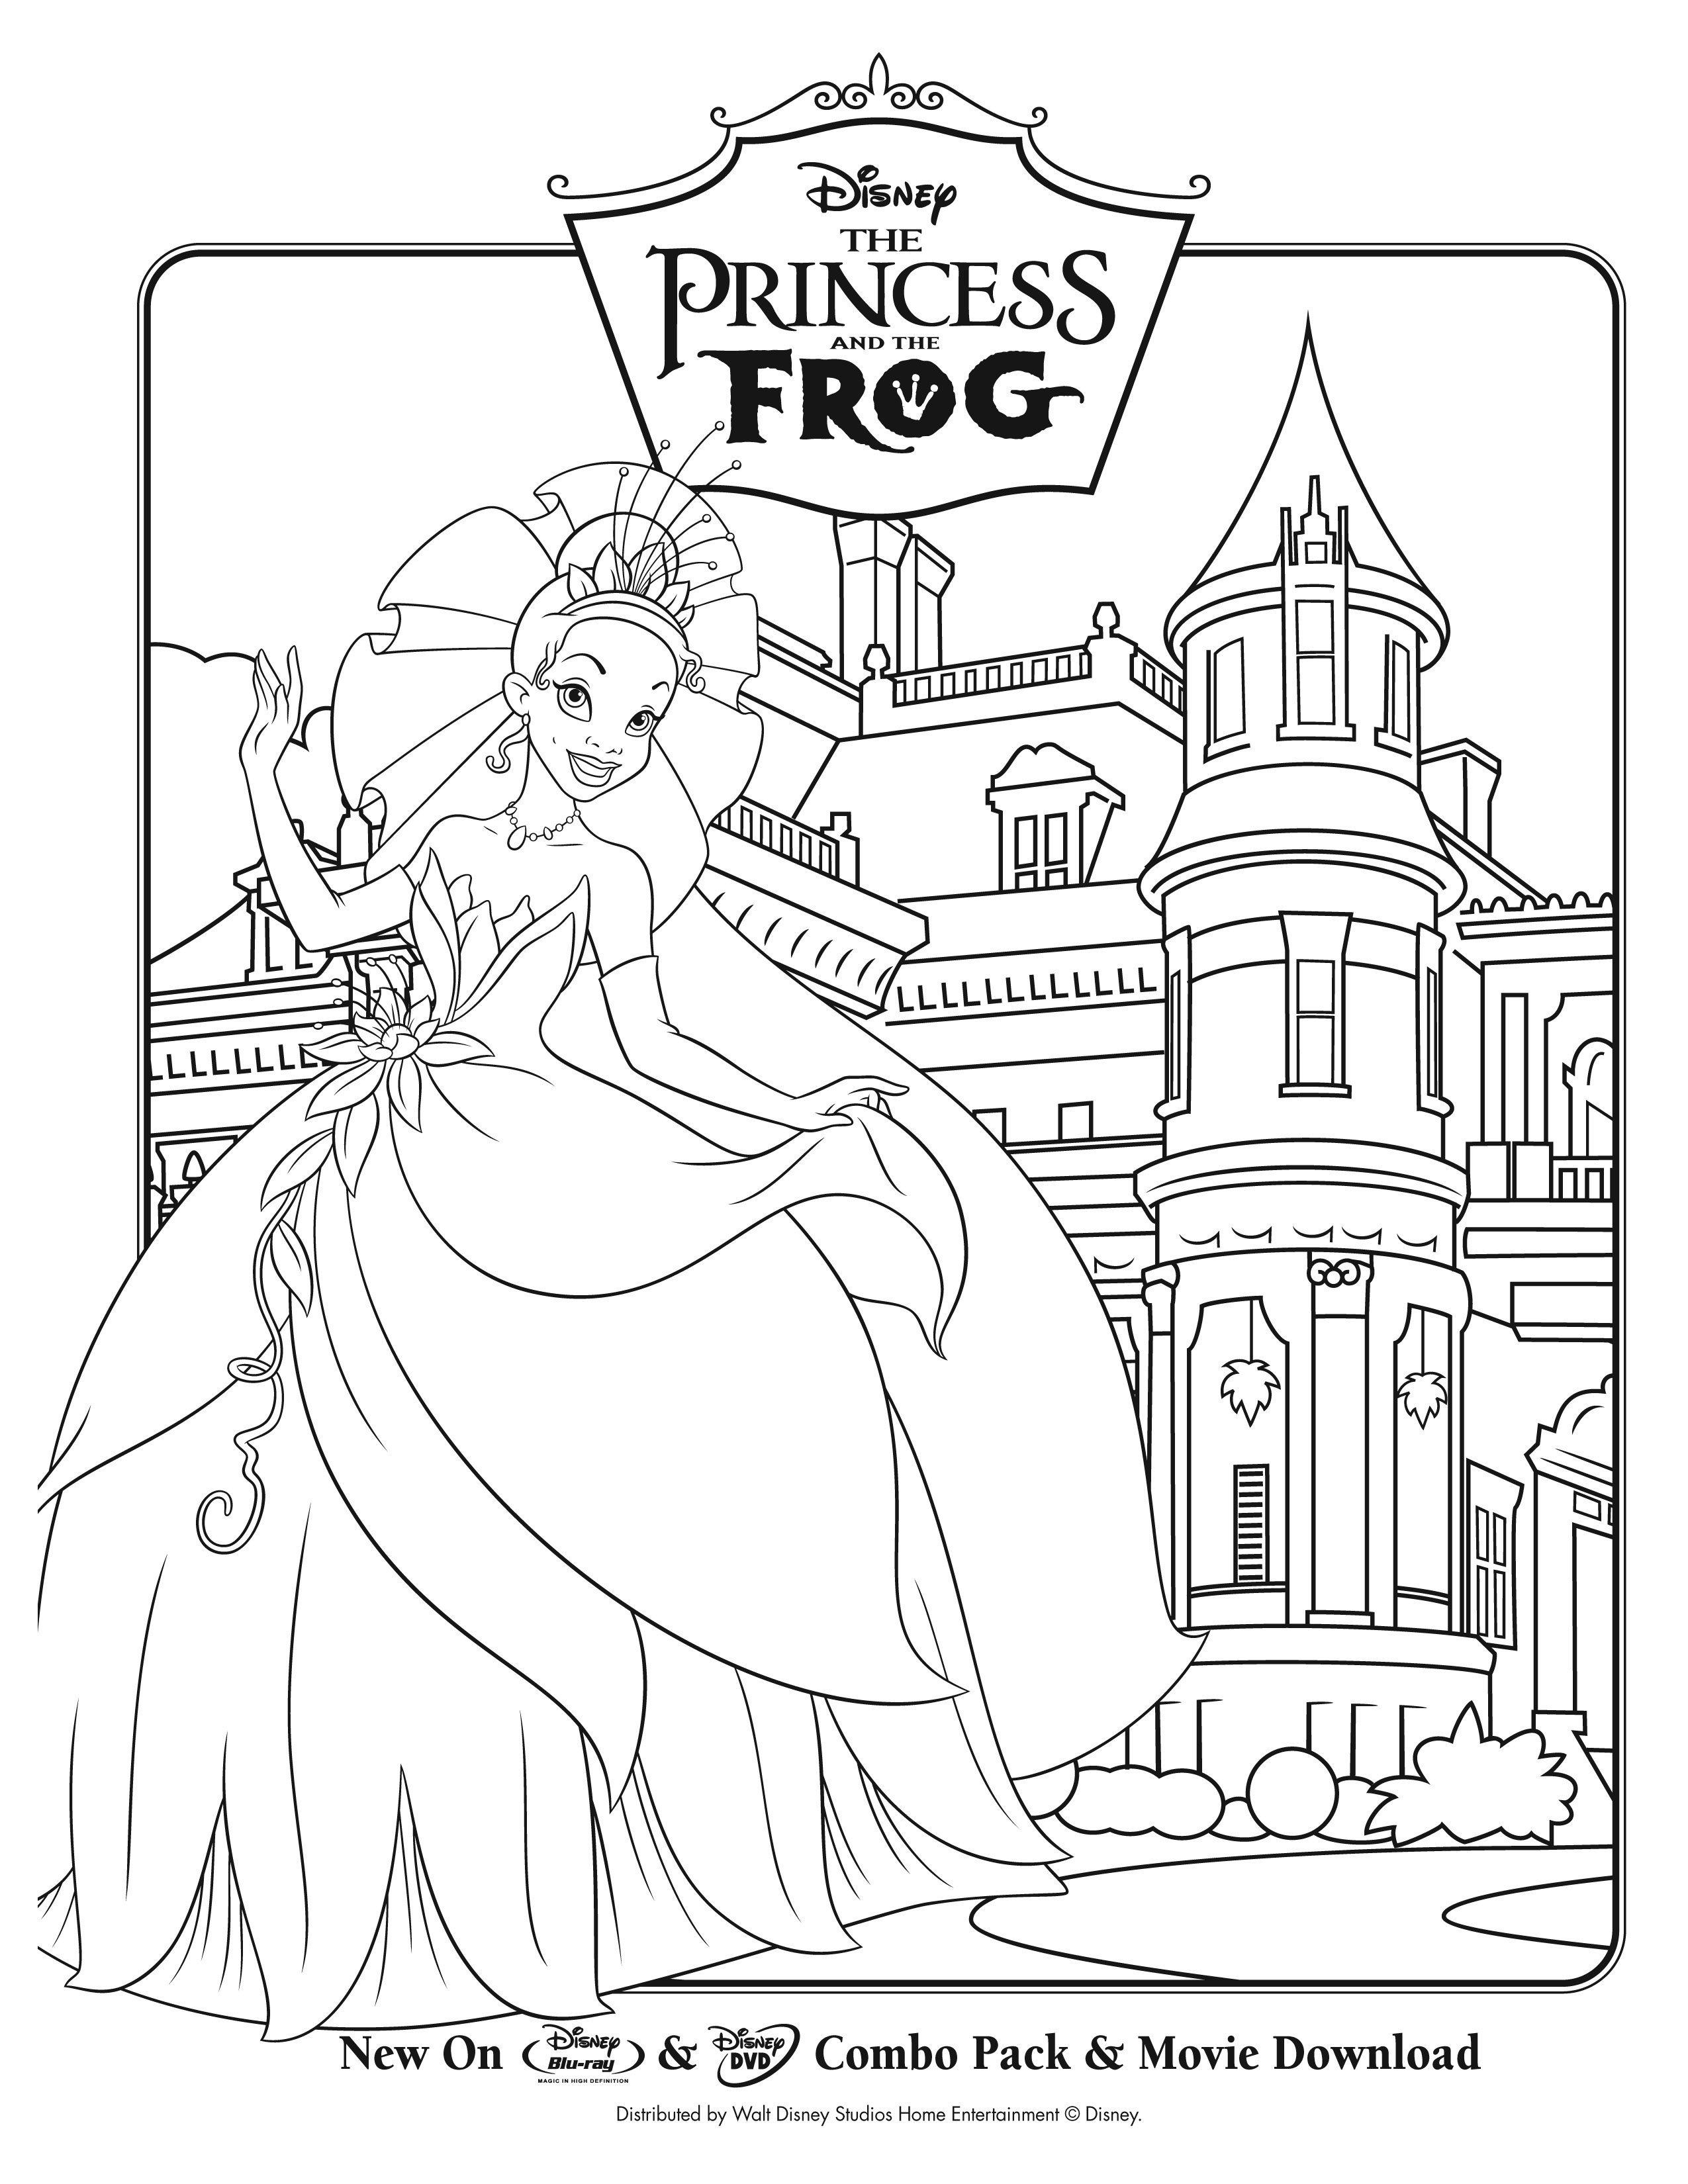 The Princess And The Frog Coloring Pages By Caden Free Printables